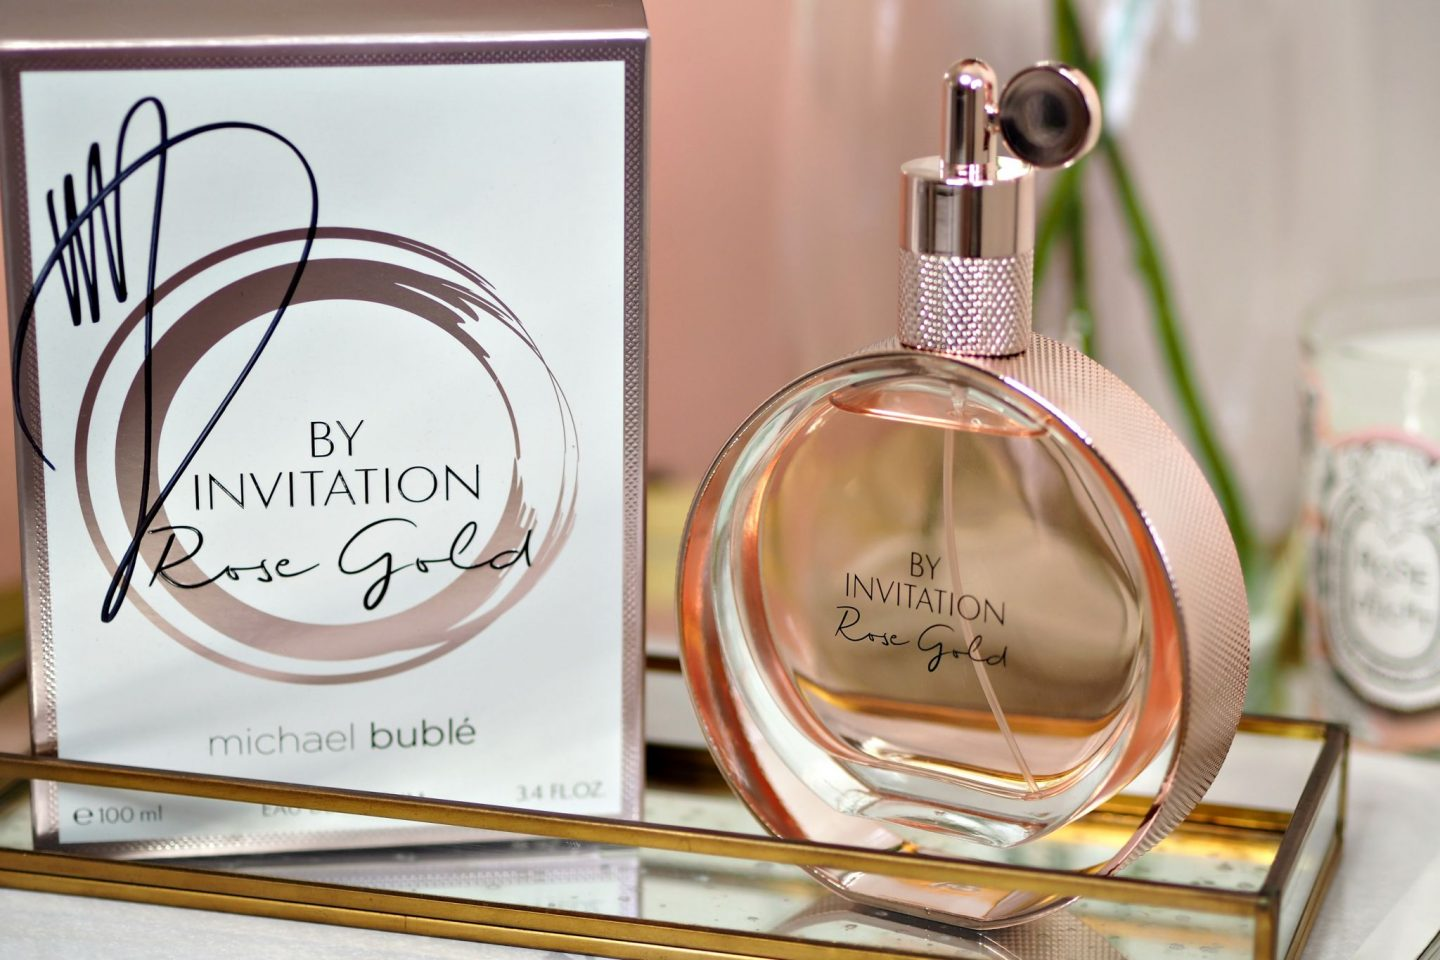 Michael Bublé By Invitation Rose Gold review